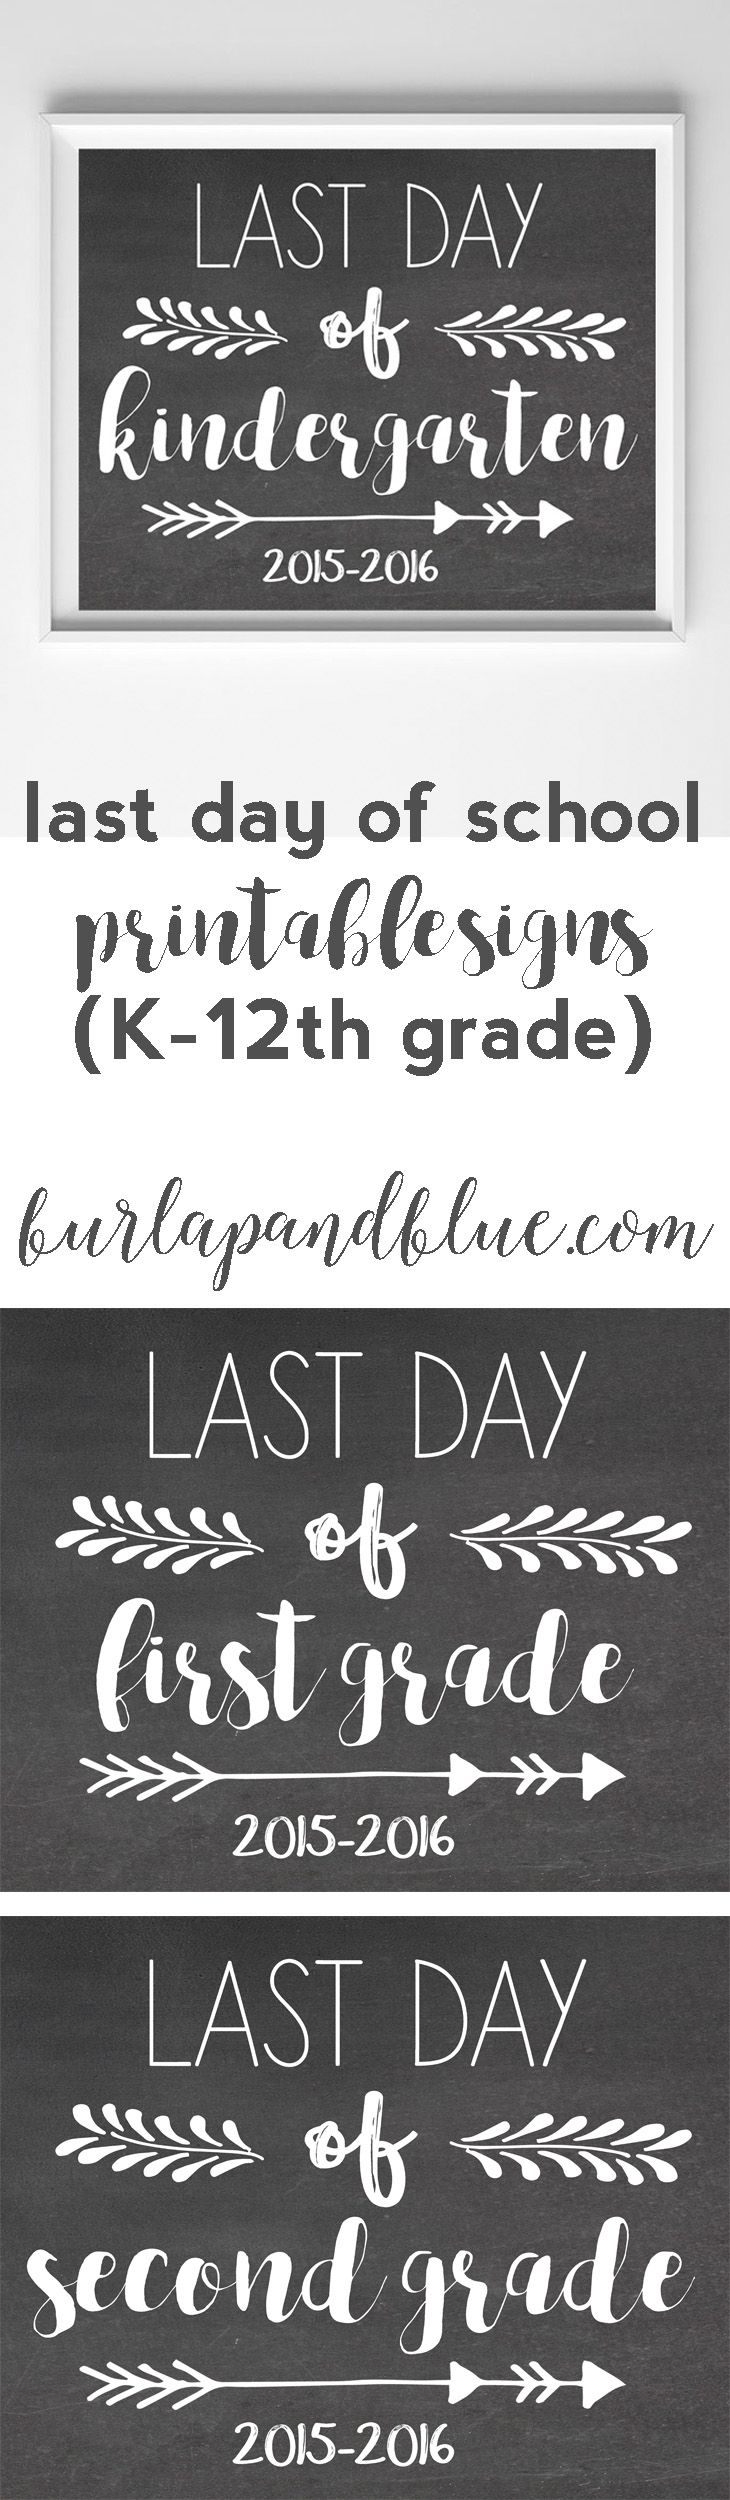 free printable last day of school signs-K-12th grade available!